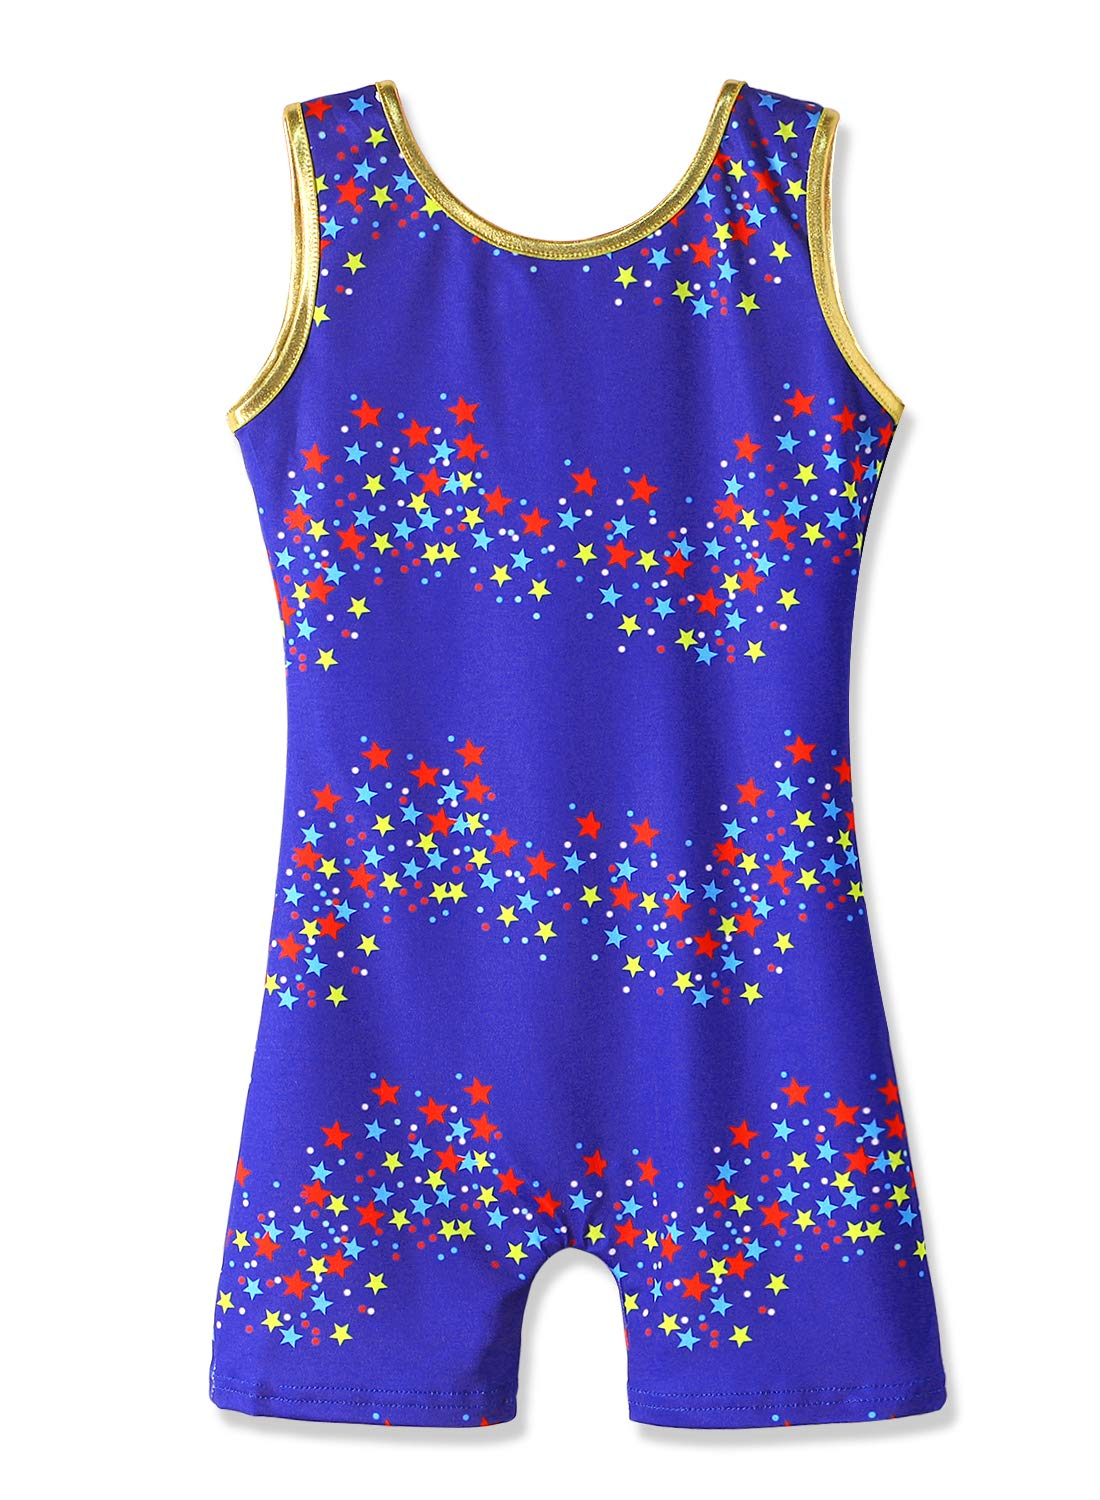 Gymnastics Biketards for Girls 3t 4t Toddler Girls Leotards with Shorts Stars Print by HOZIY